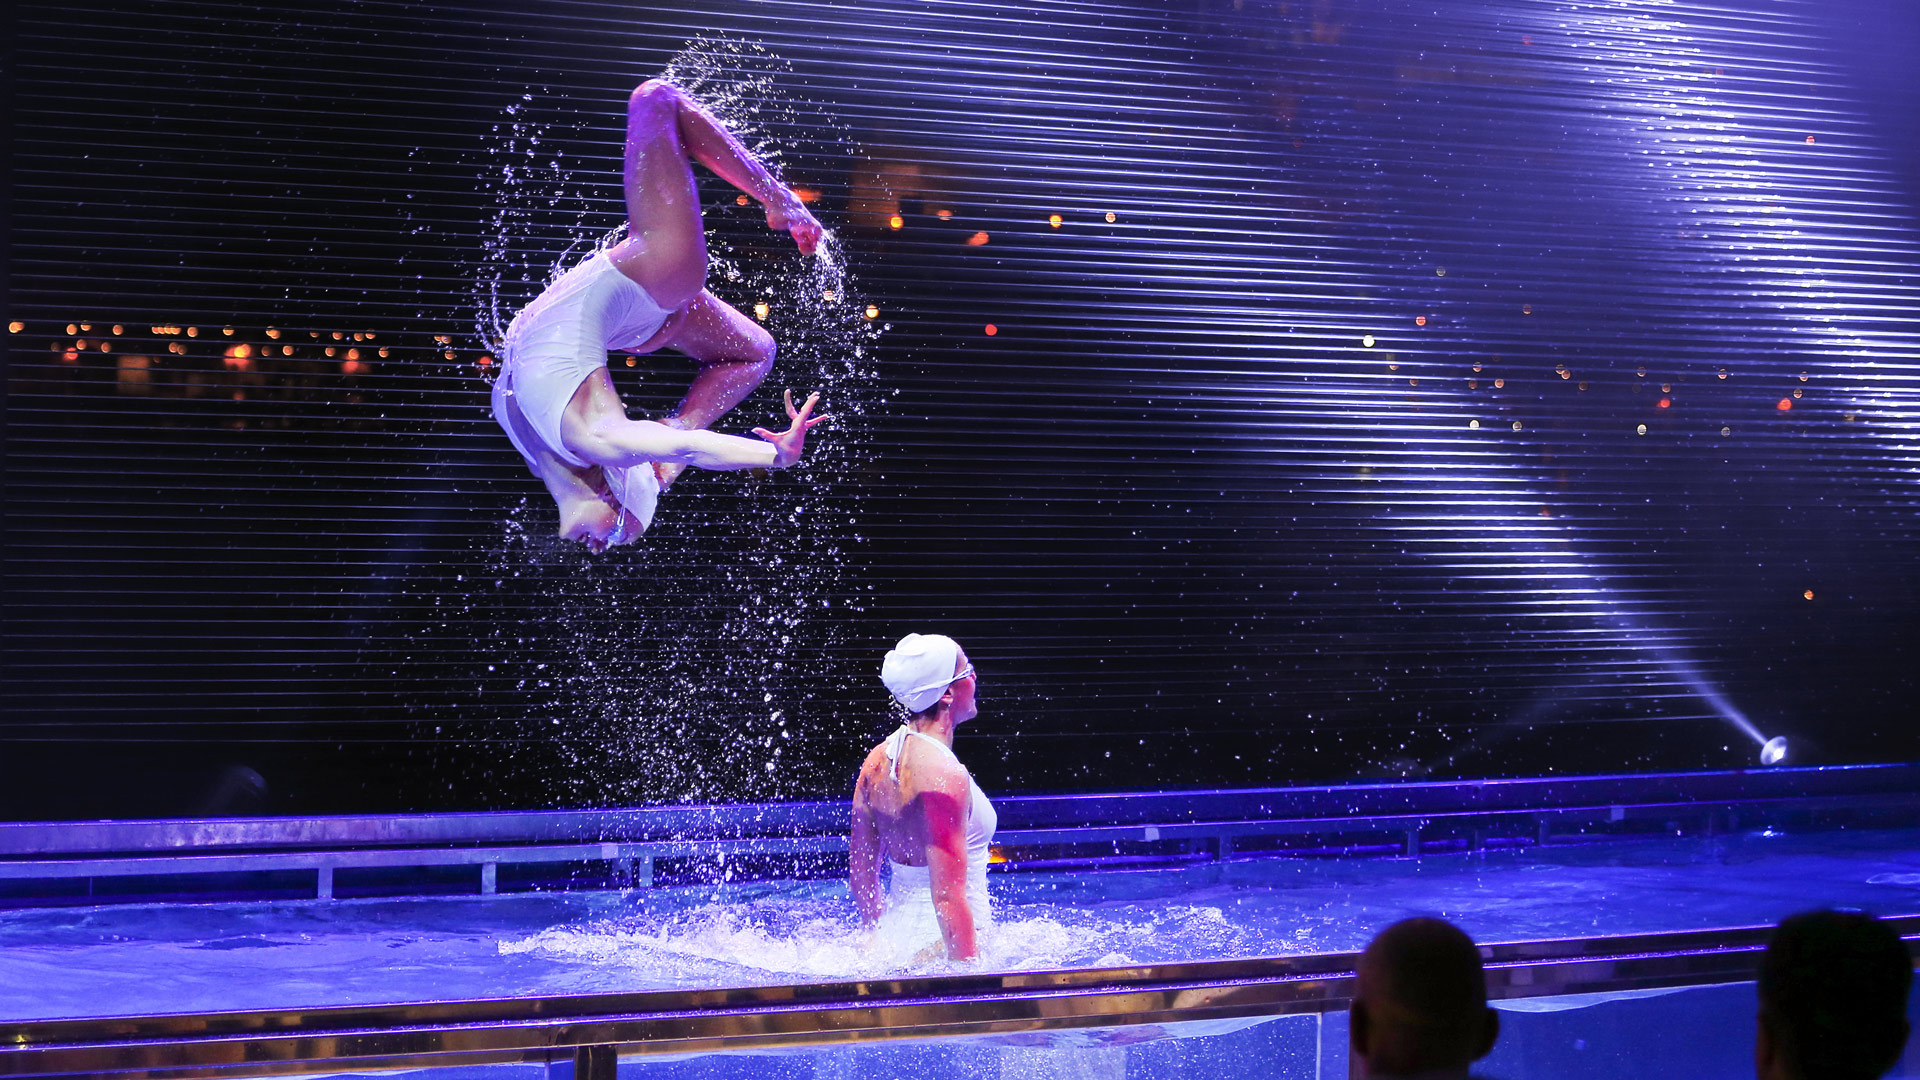 Two dancers in white swimsuits show a spectacular show in the stage pool.